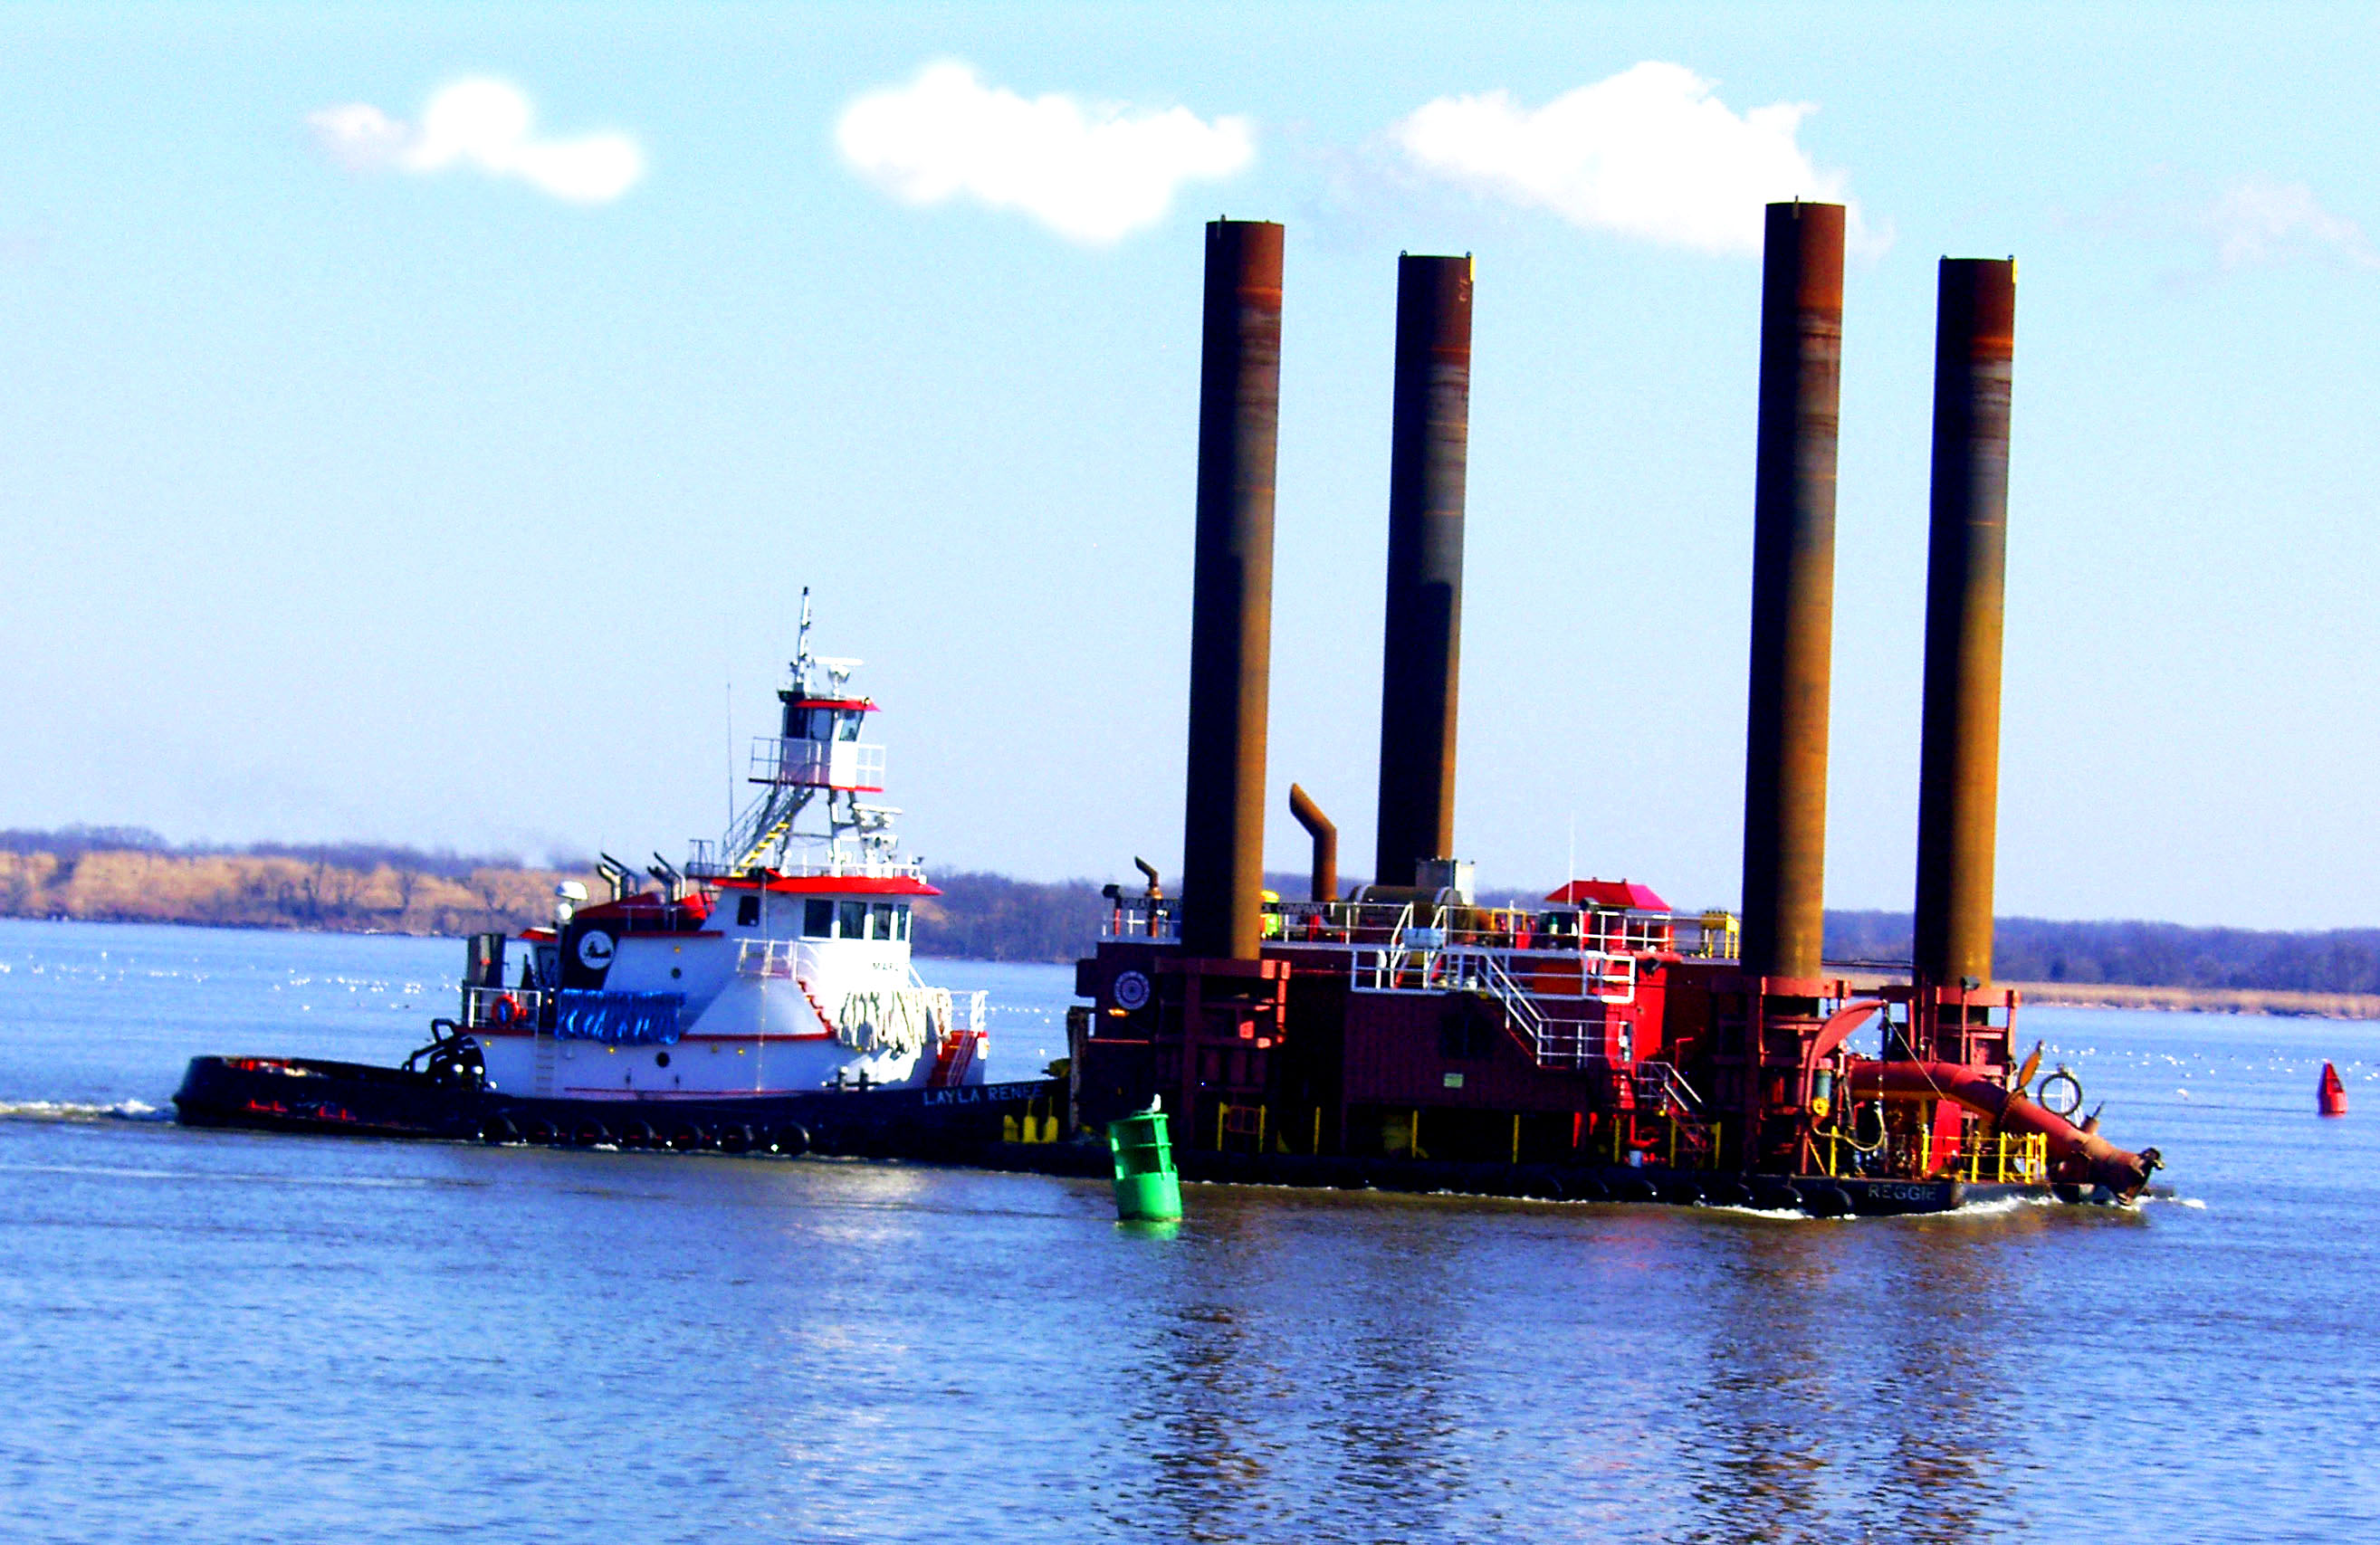 Dredger & Tug On The Delaware